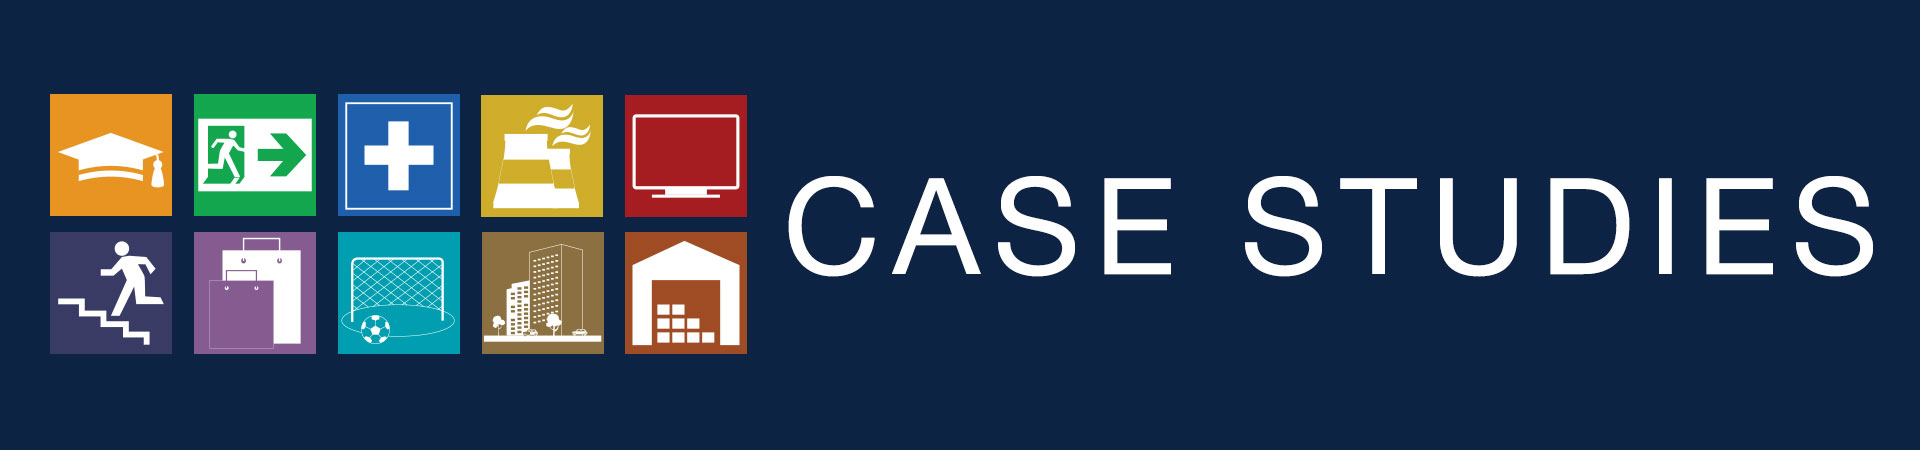 Case studies hero image